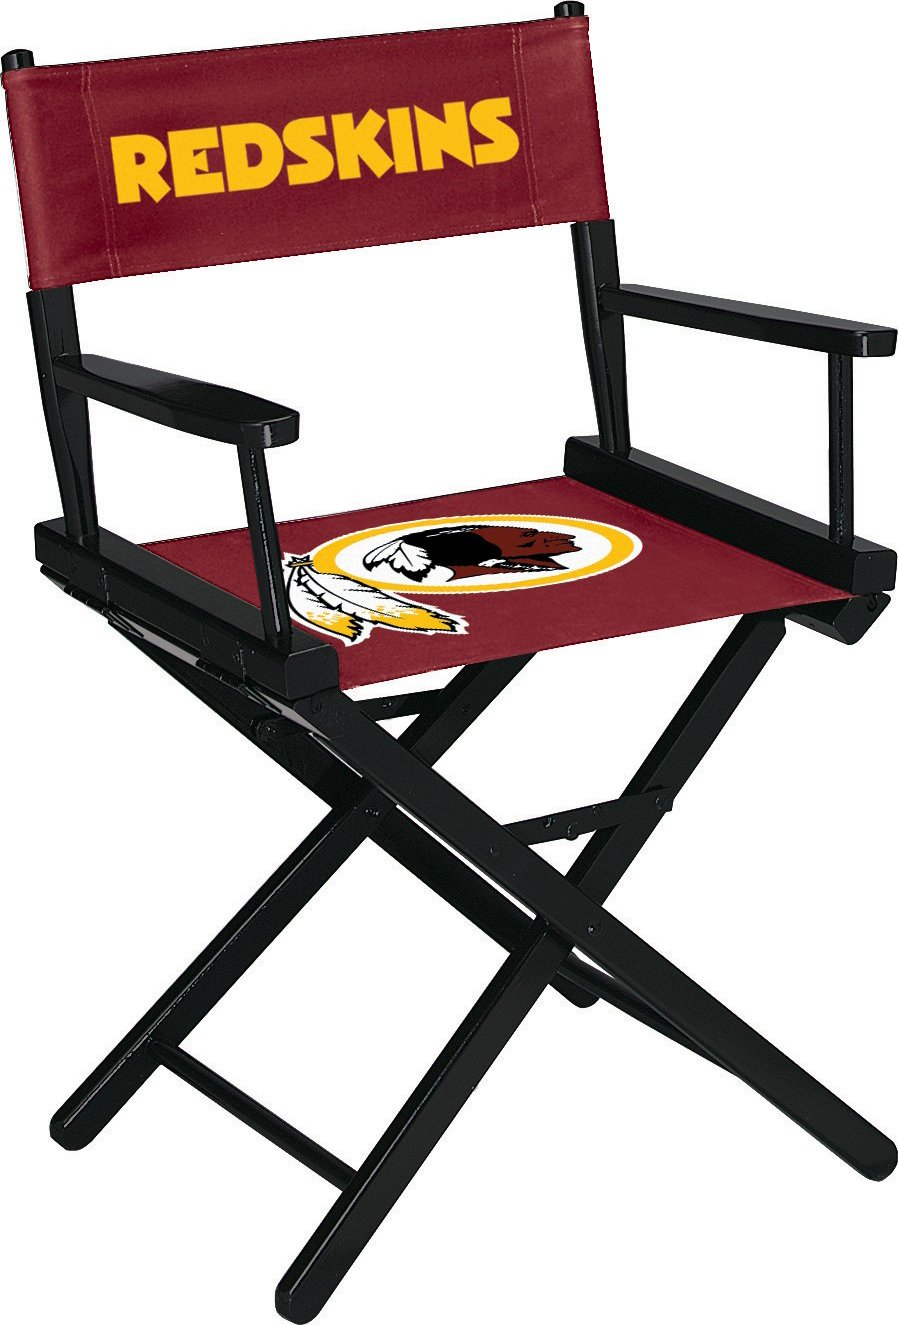 Imperial Officially Licensed NFL Merchandise: Directors Chair (Short, Table Height), Washington Redskins